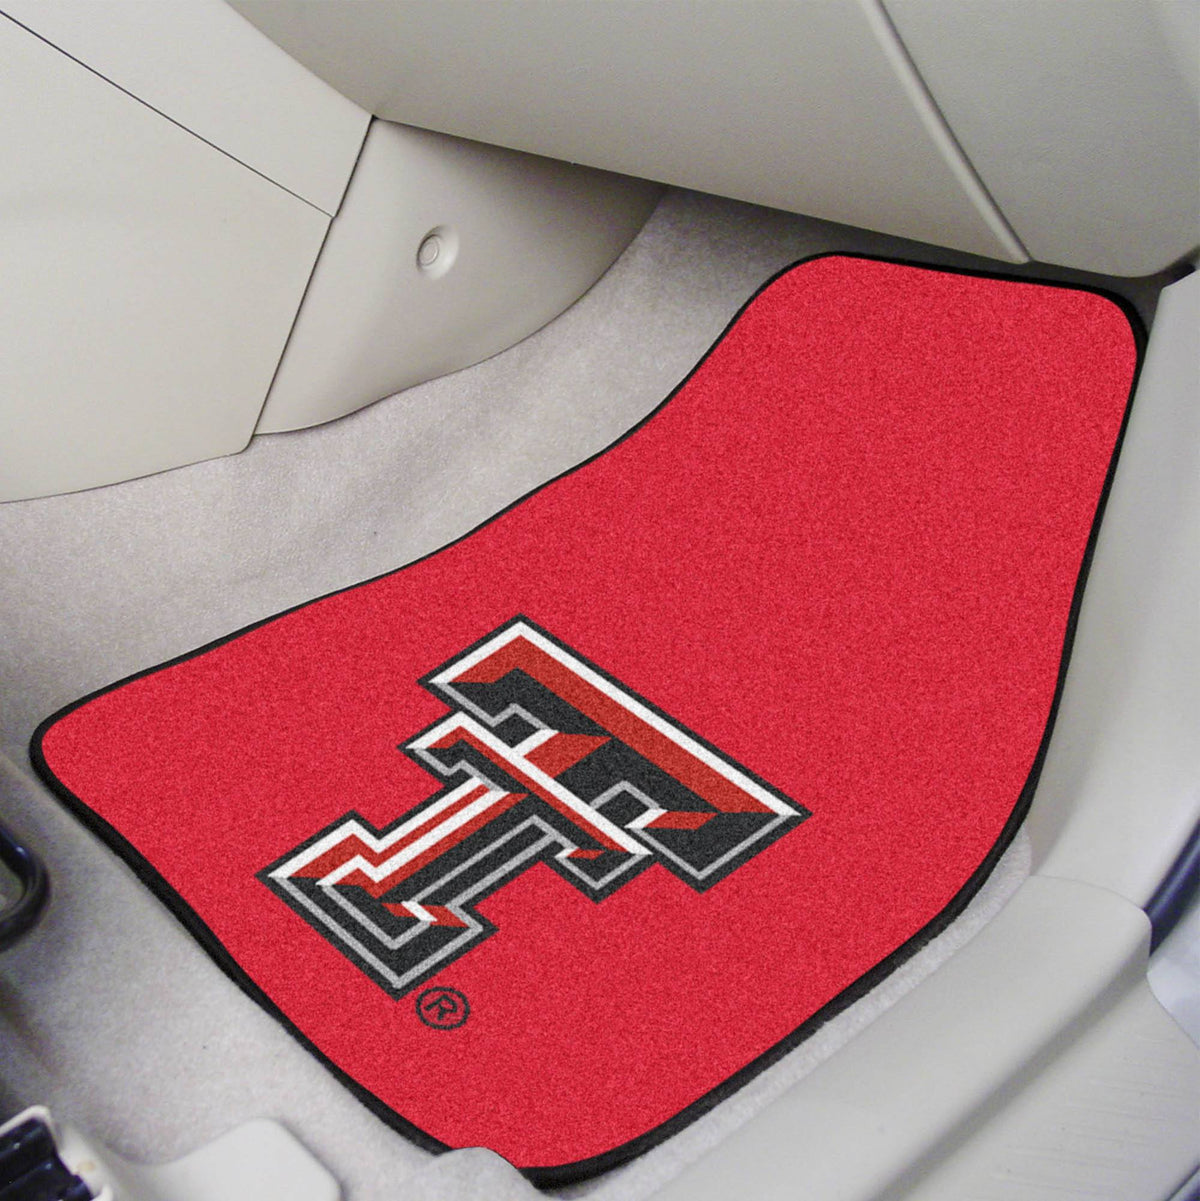 Collegiate - Carpet Car Mat, 2-Piece Set: T - Z Collegiate Car Mat, Front Car Mats, 2-pc Carpet Car Mat Set, Collegiate, Auto Fan Mats Texas Tech